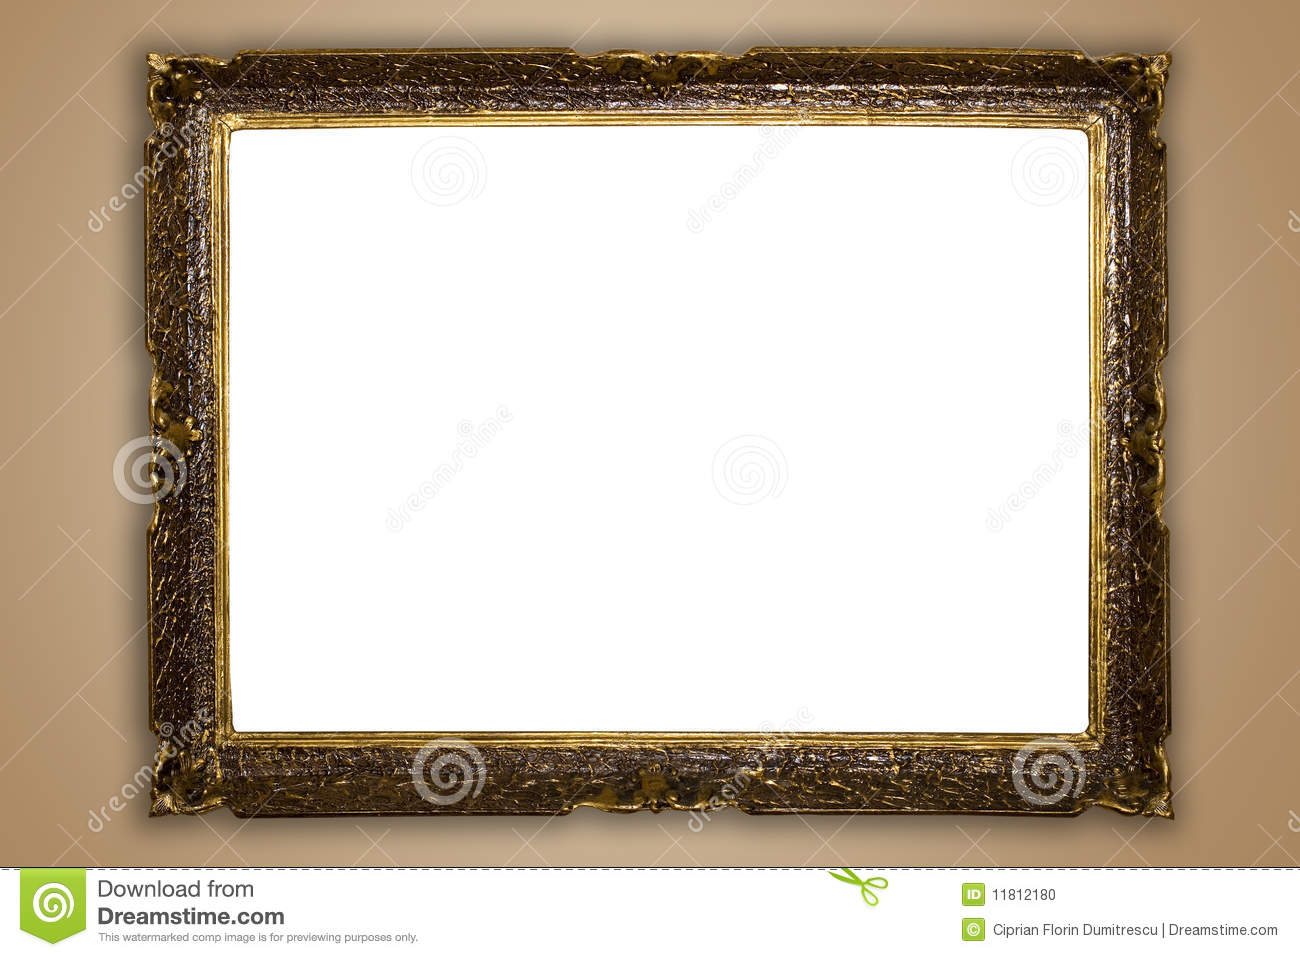 Big old frame stock photo. Image of ornament, interior - 11812180